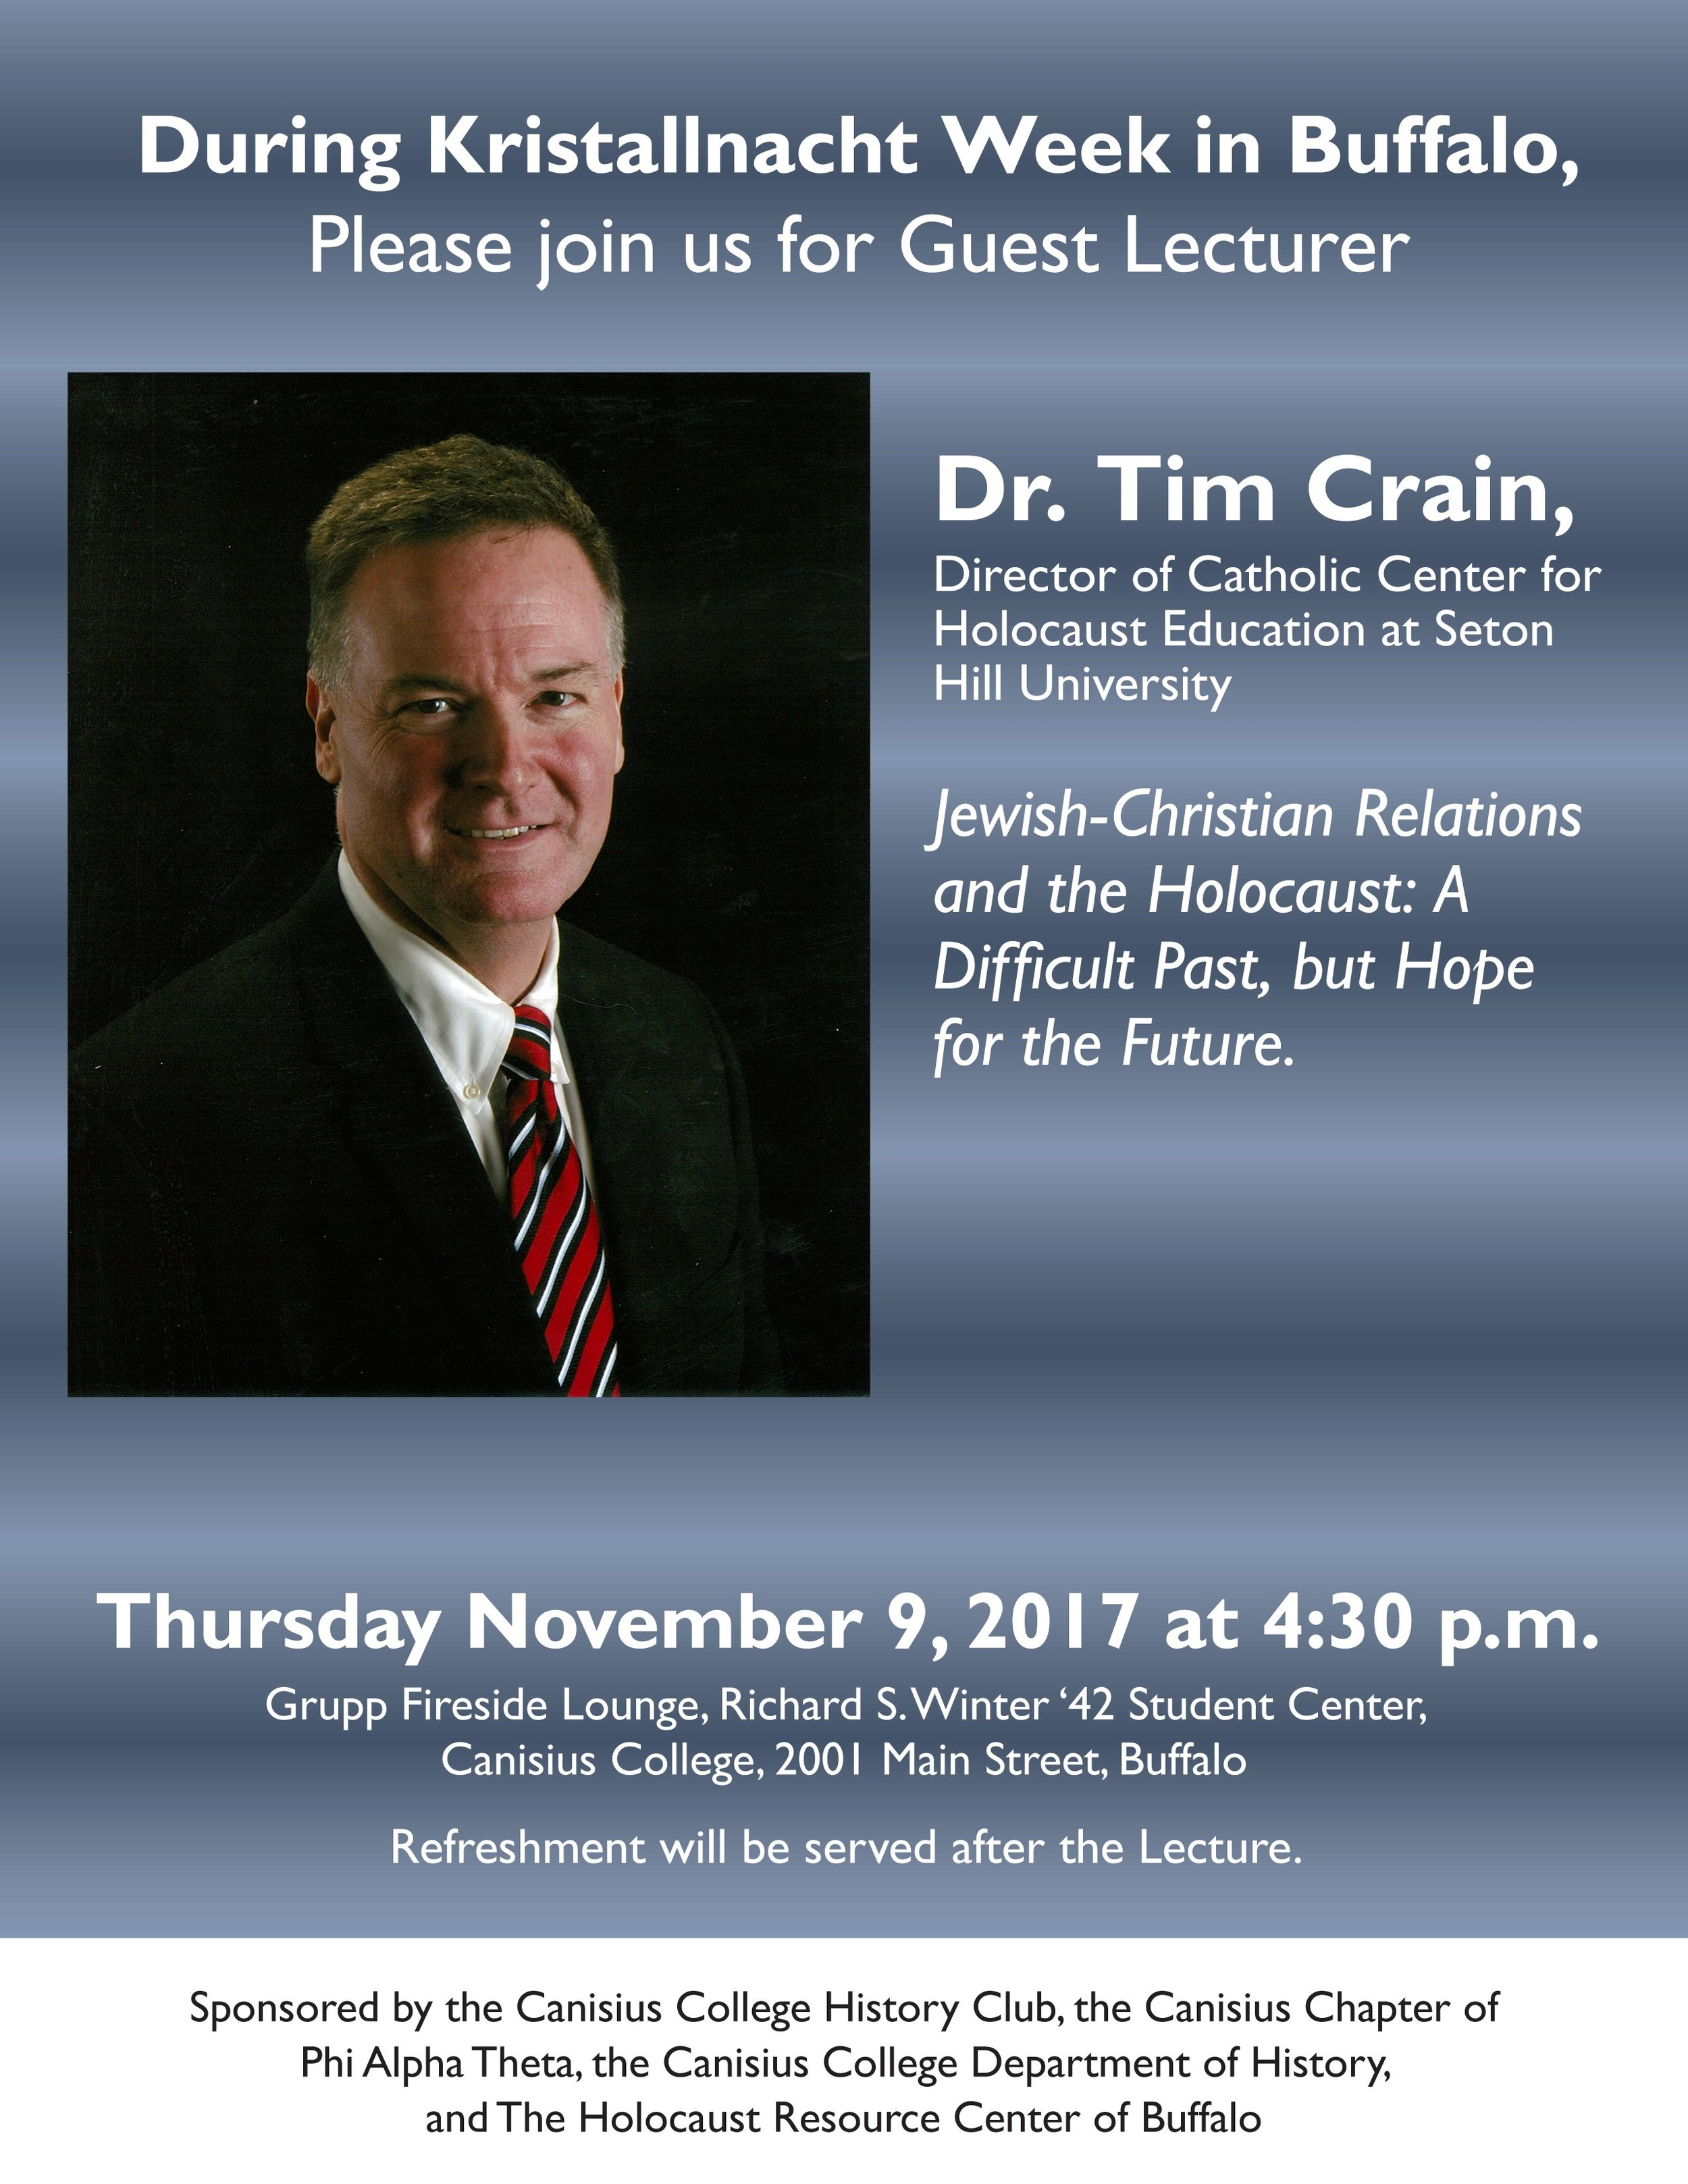 TIM CRAIN FLYER FINAL.jpg